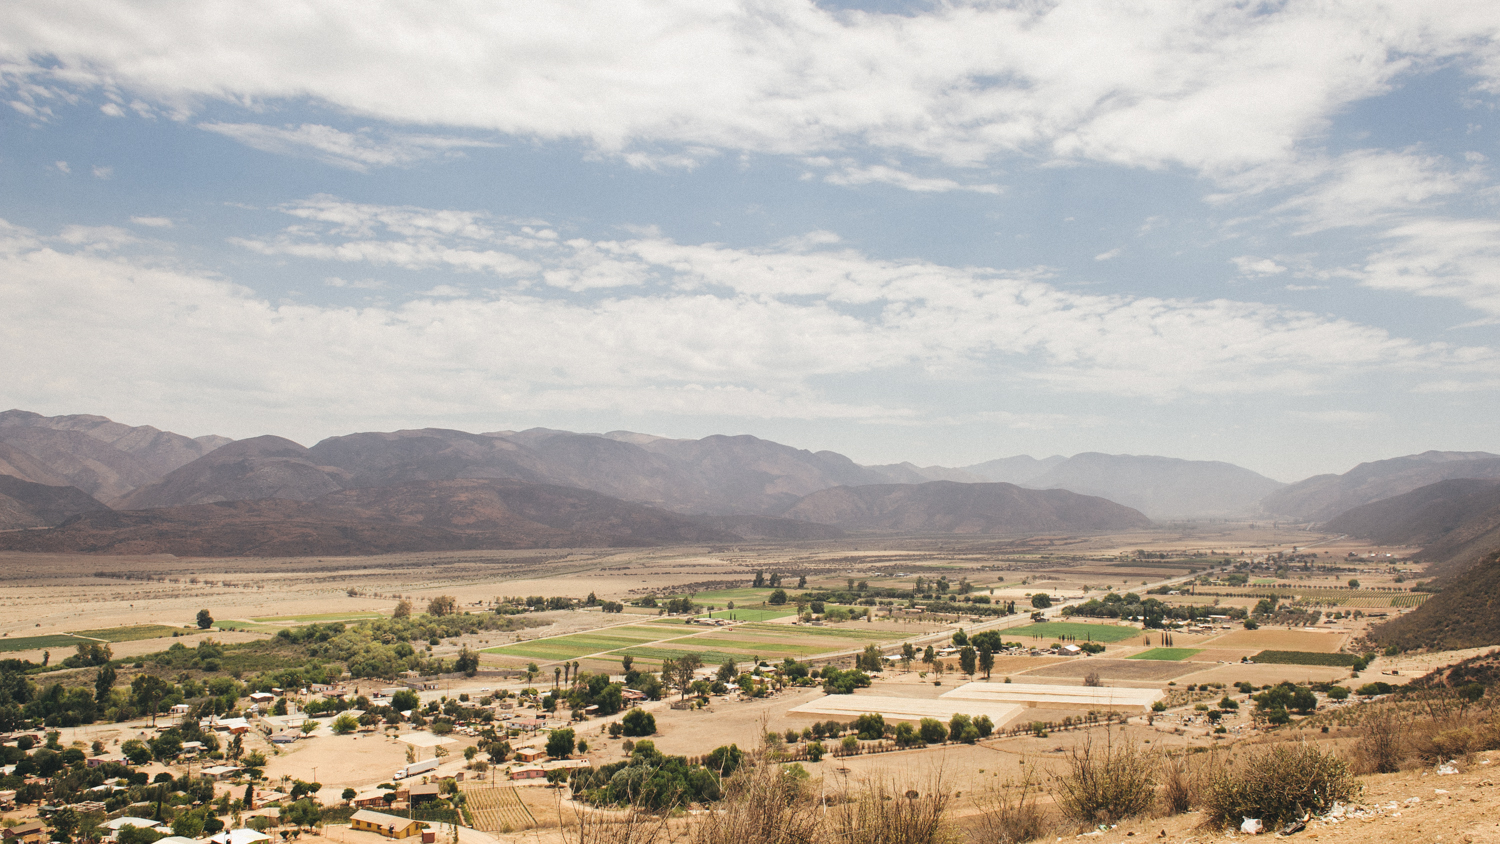 The wine-growing area around Ensenada consists of three valley regions; Valle de Guadelupe, Santo Tomás and San Vicente. This is the view from above Santo Tomás.